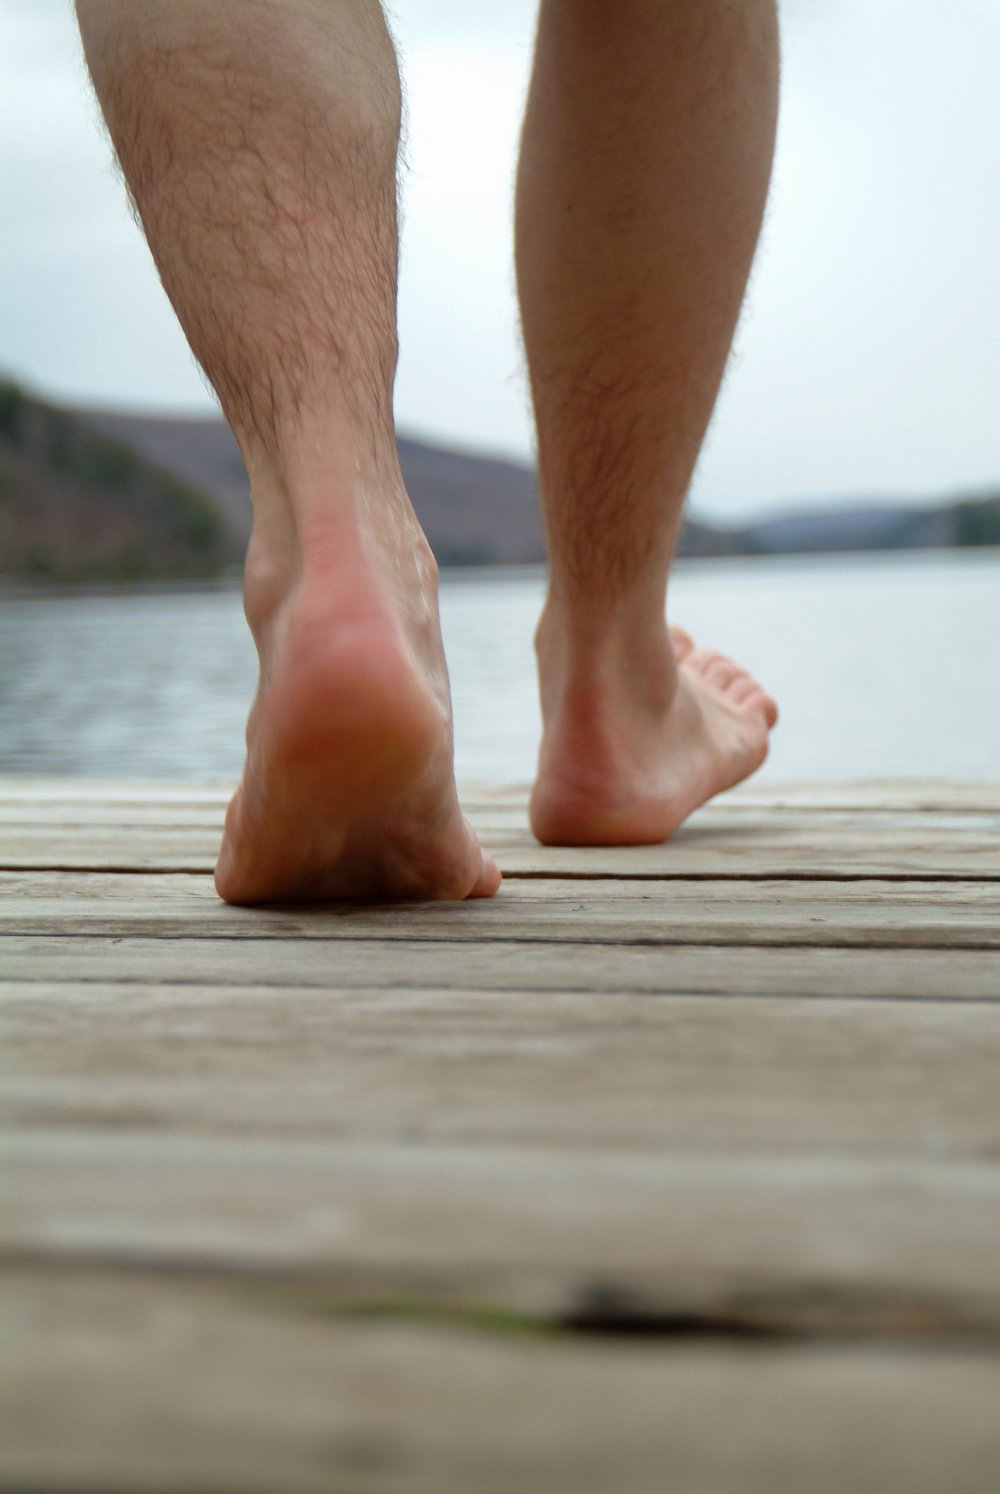 Image of ankles doing what they are MEANT to do, take you confidently wherever you would like to go.